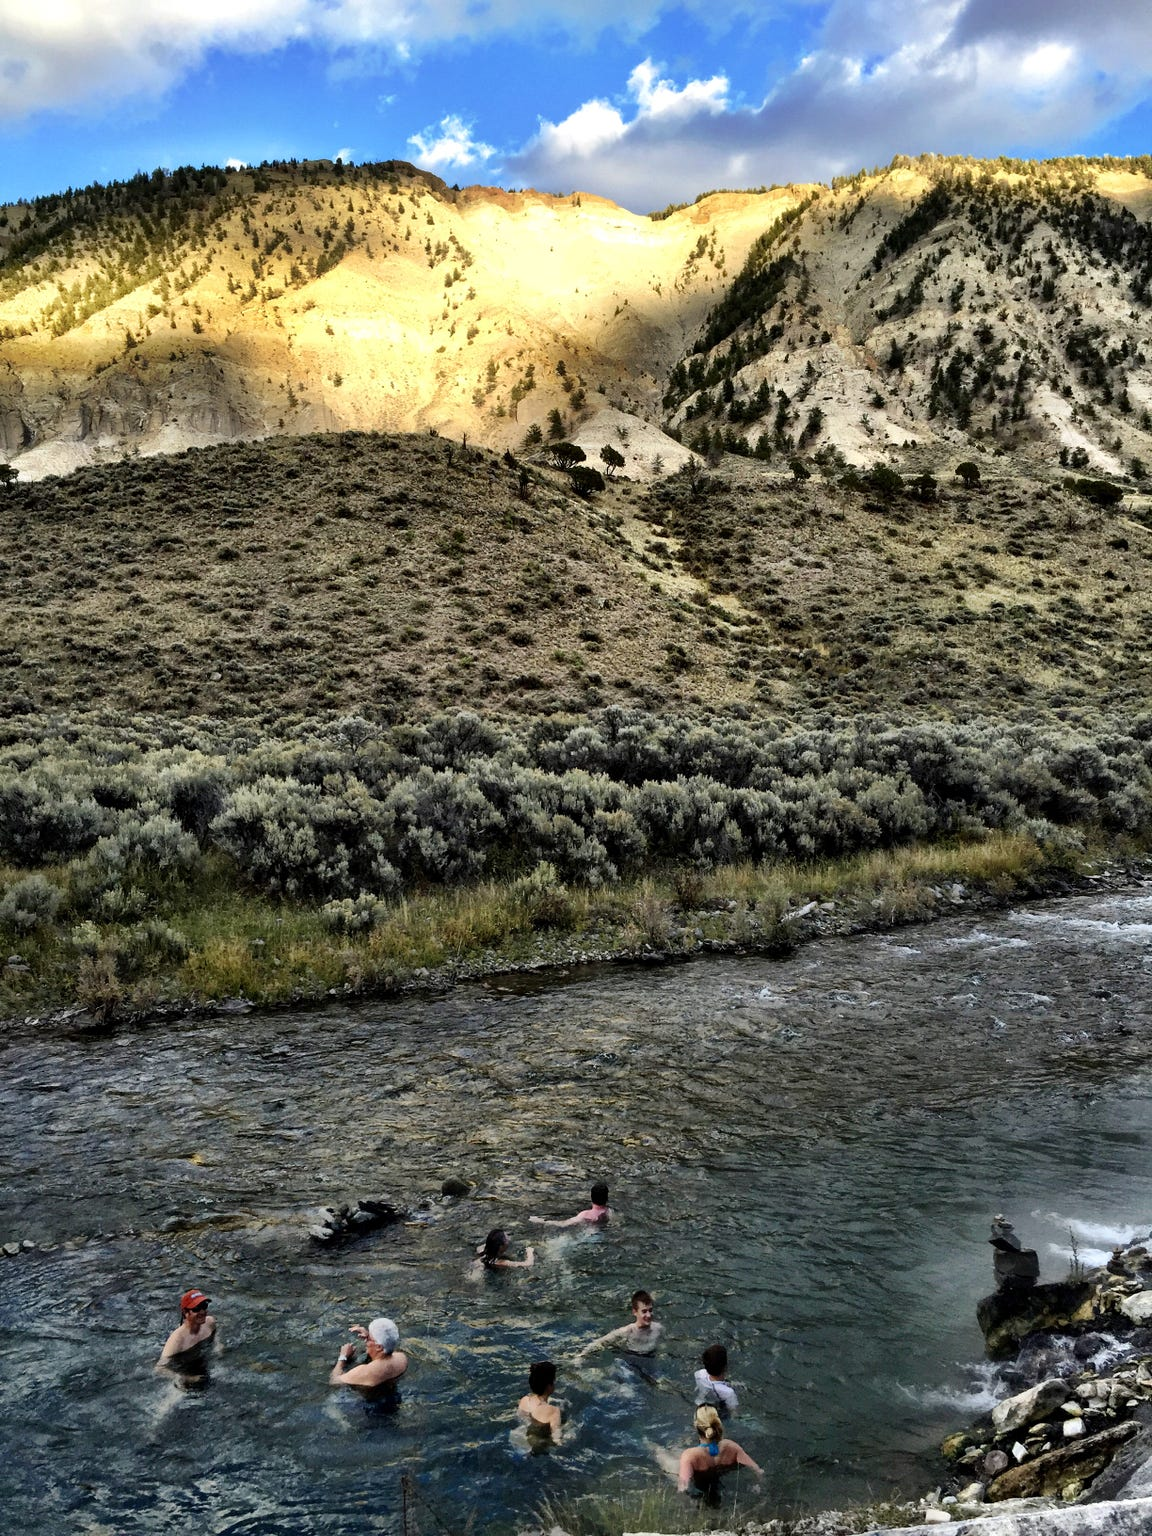 The Boiling River is a popular spot for a dip in Yellowstone